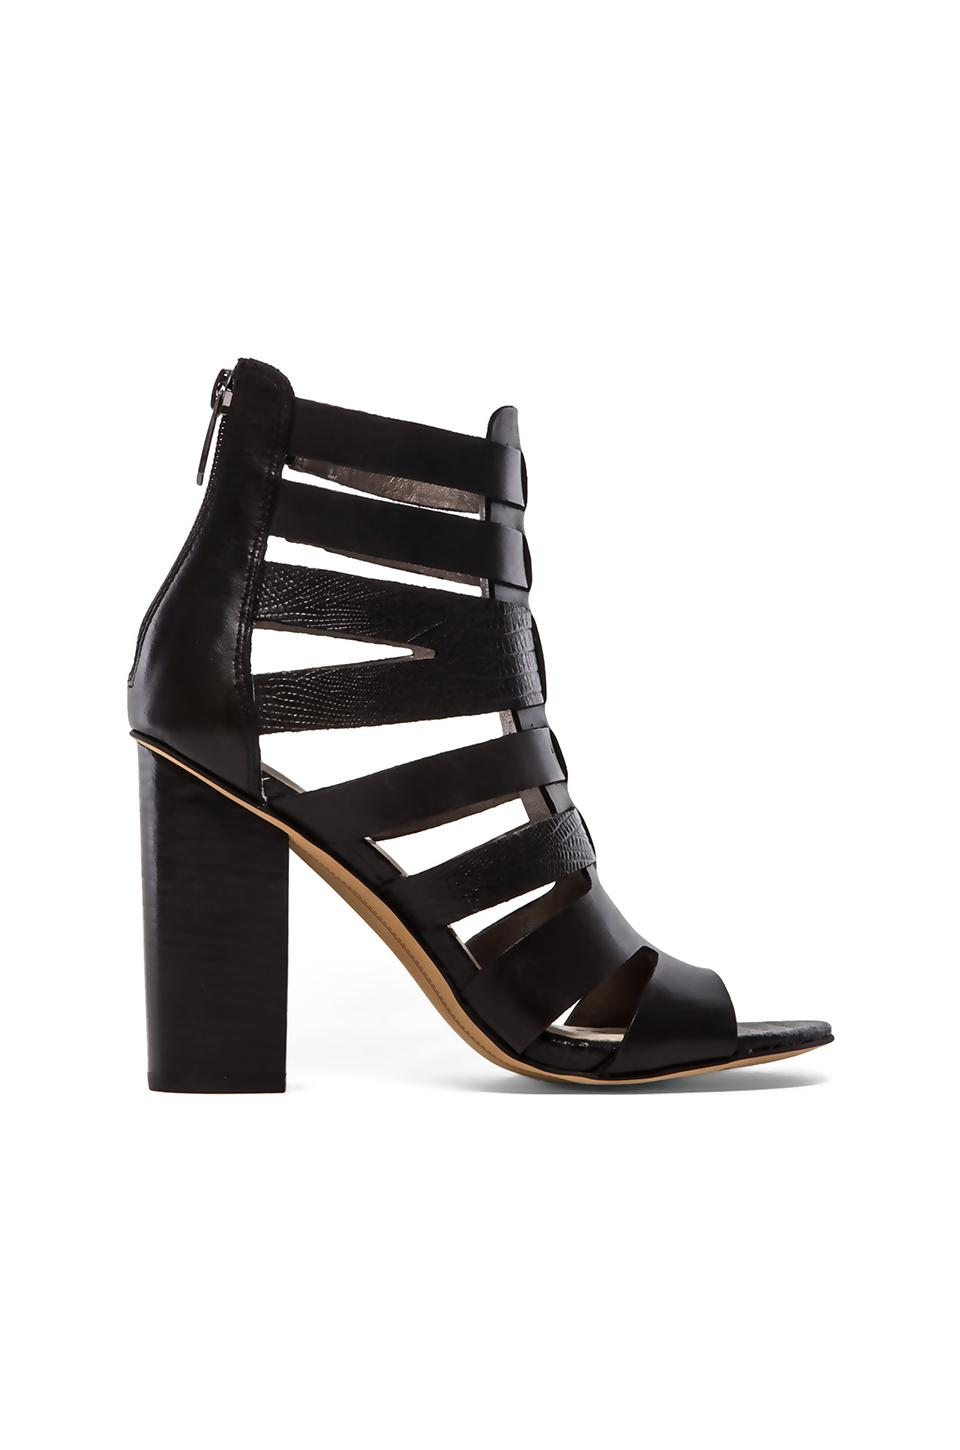 Sam Edelman Yazmine Heel in Black